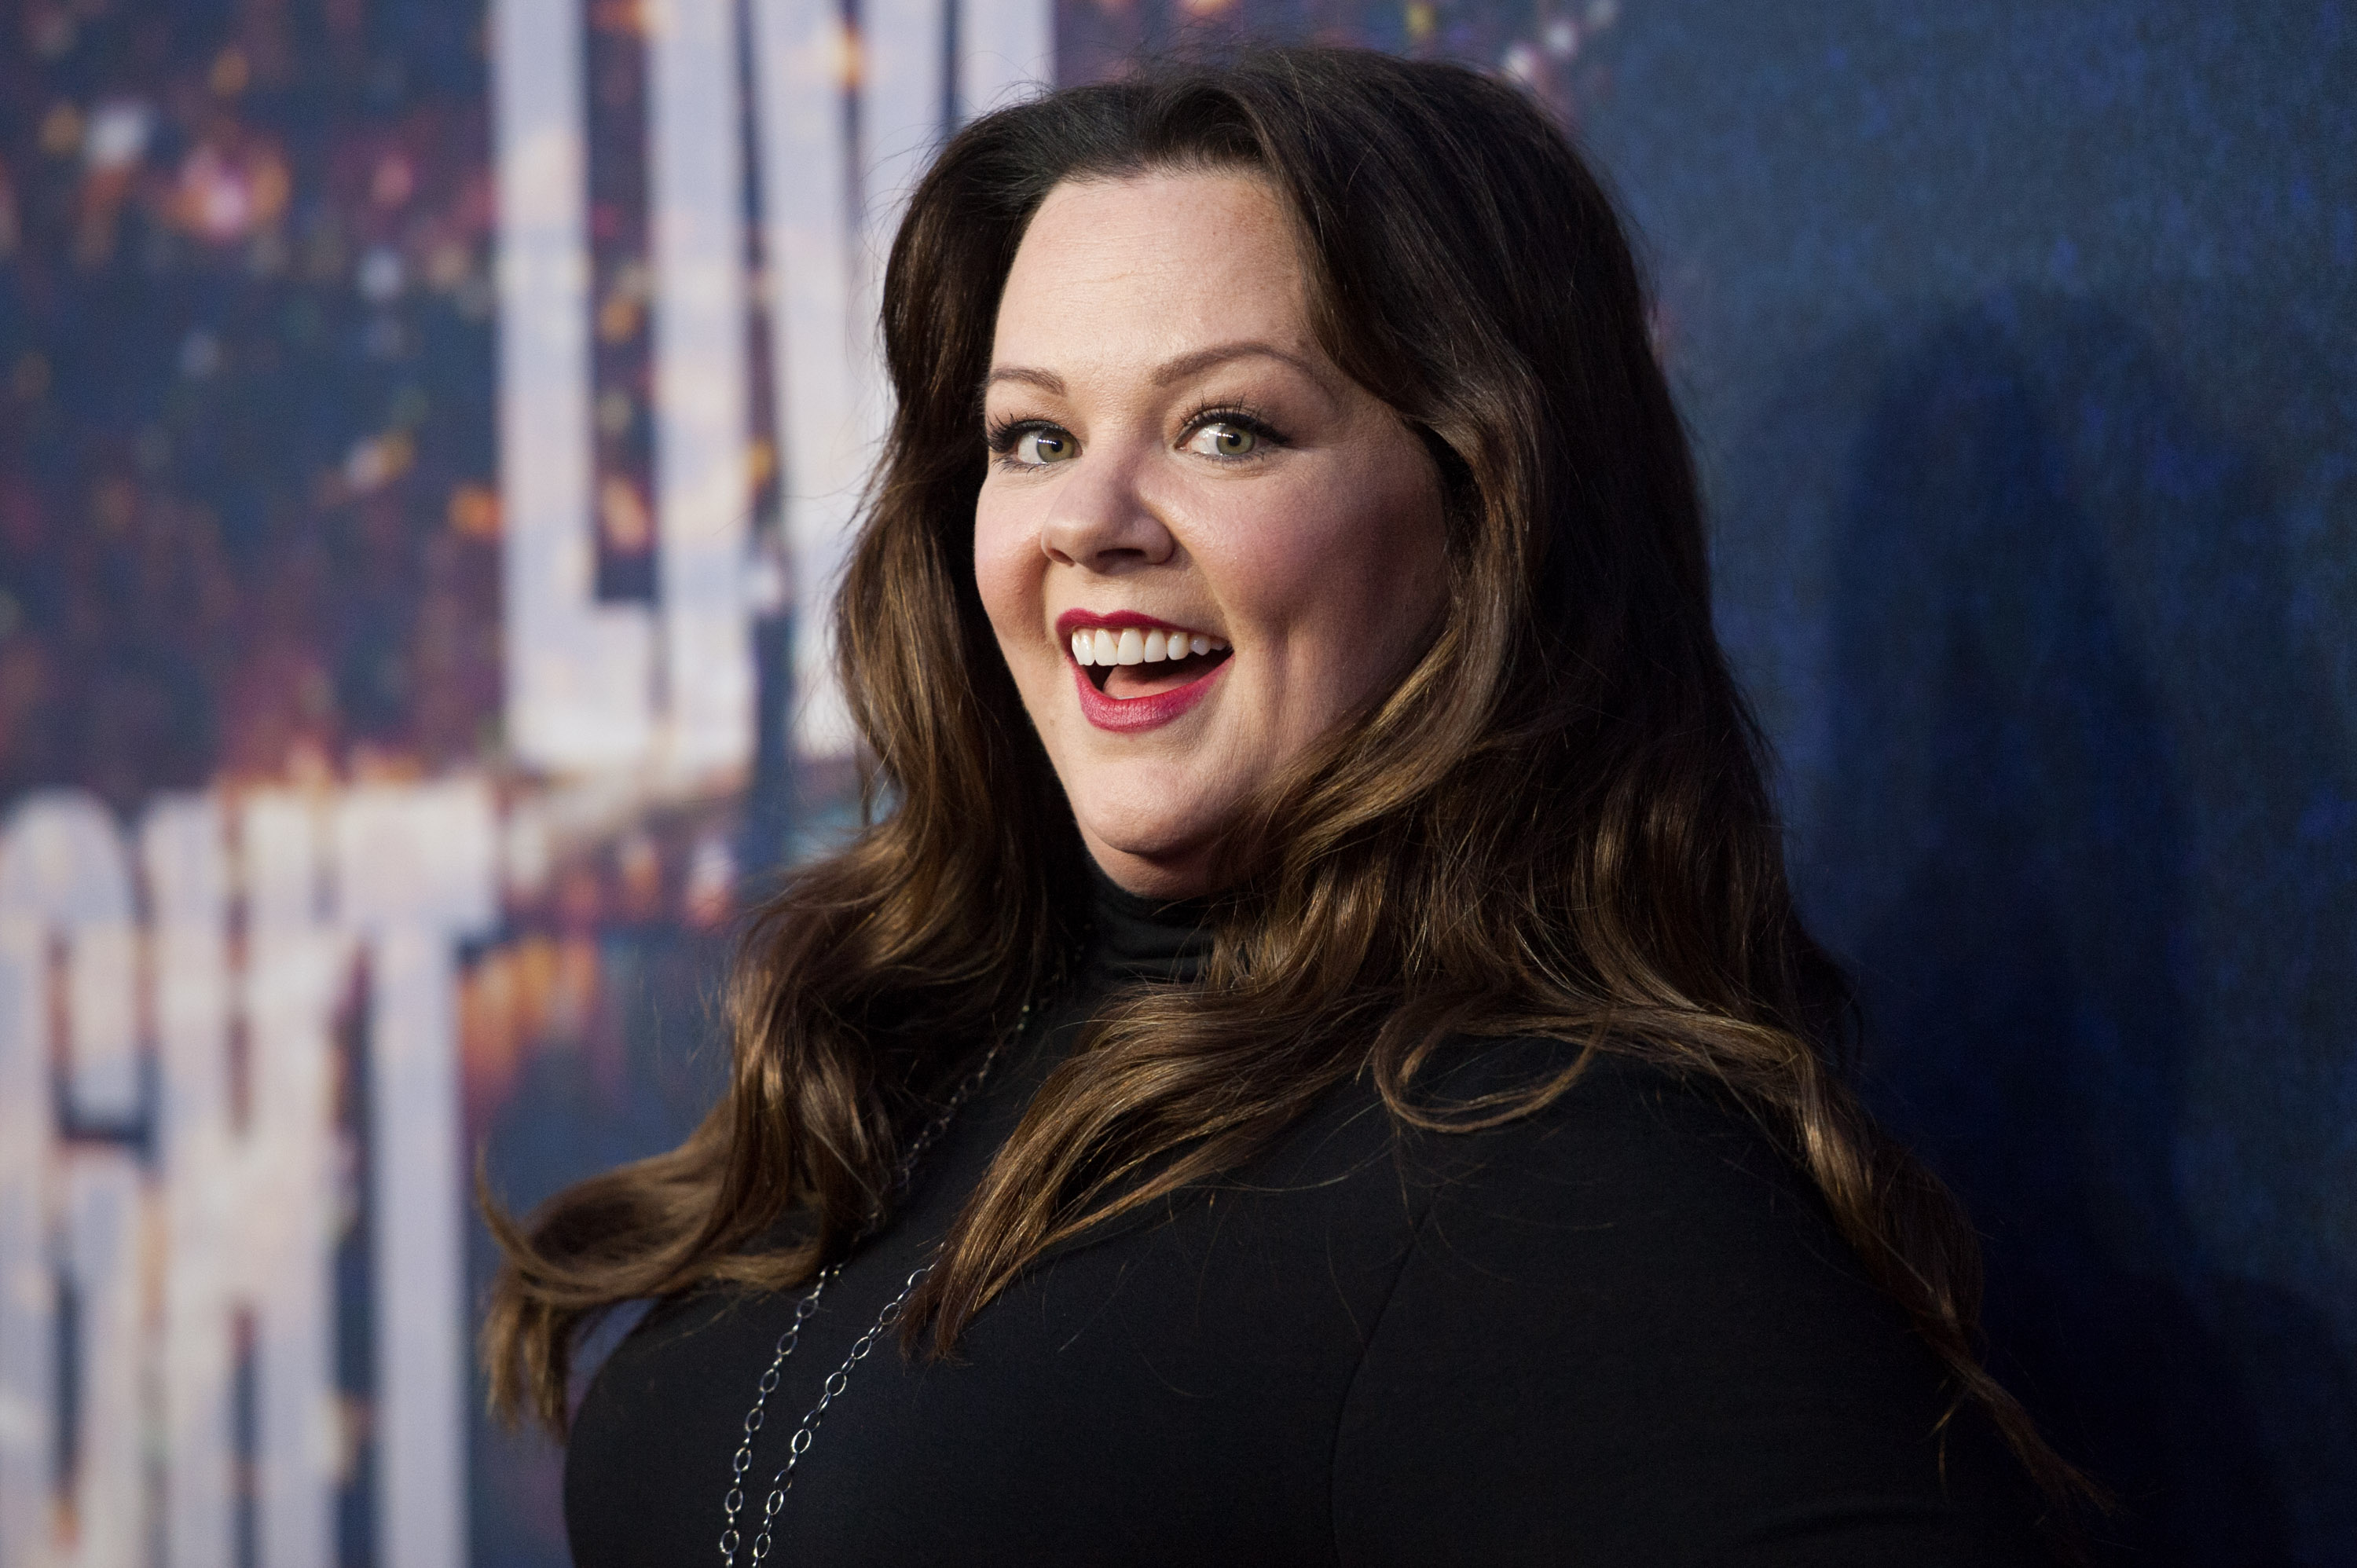 Image result for melissa mccarthy wallpaper